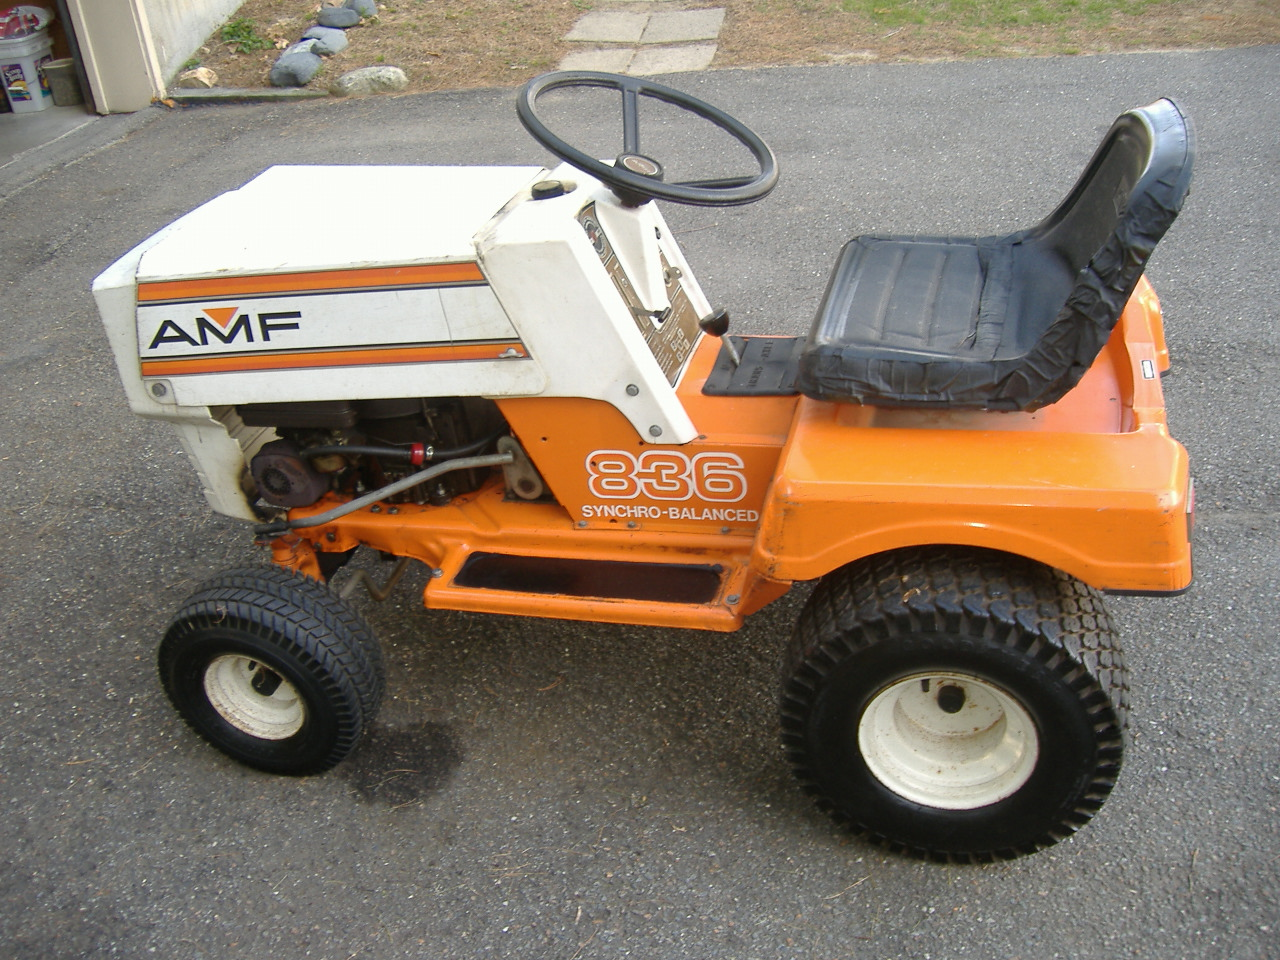 AMF Lawn tractor serviced and repaired from side